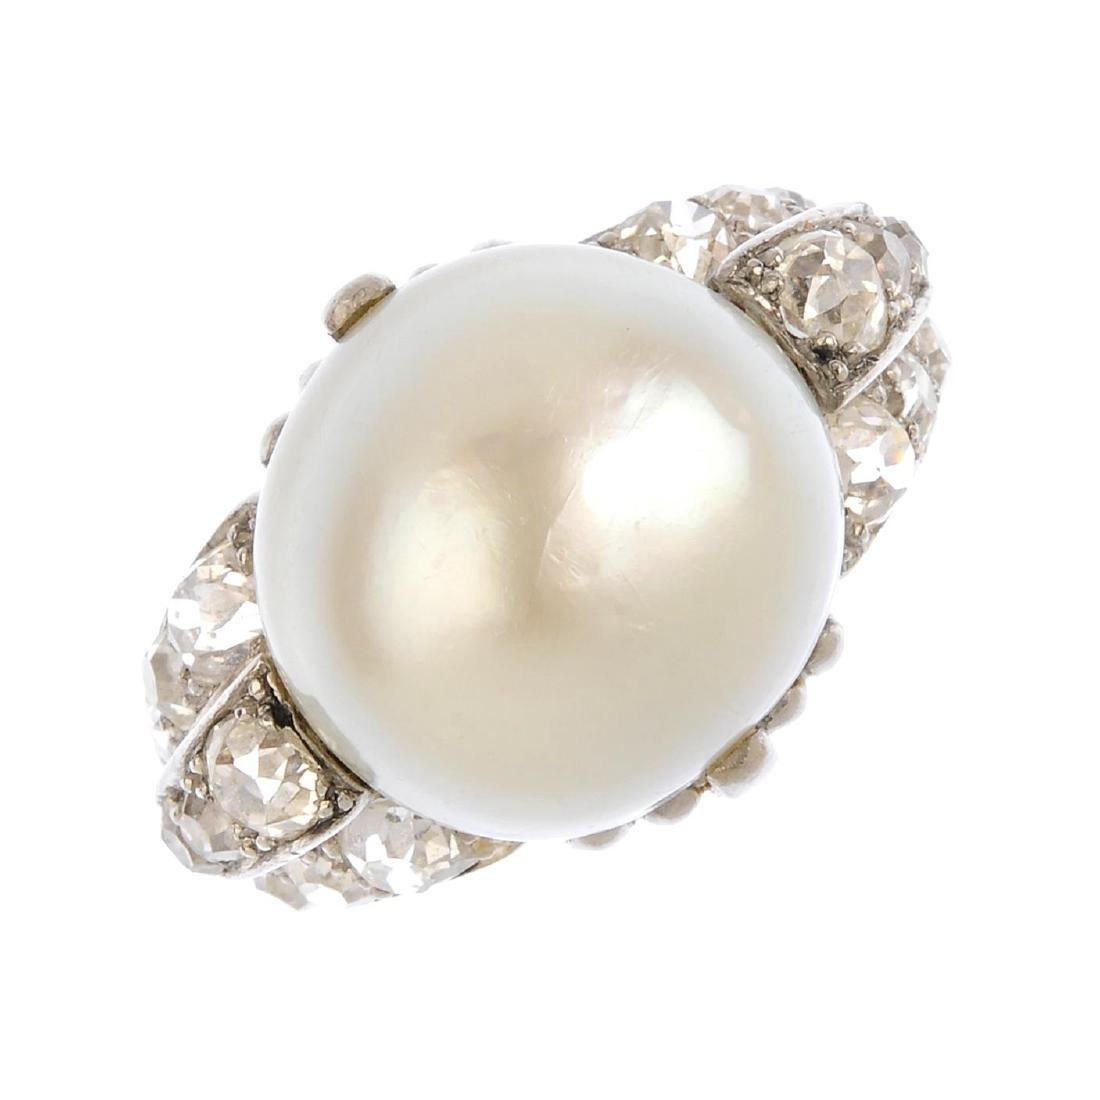 A cultured pearl and diamond dress ring. The cultured